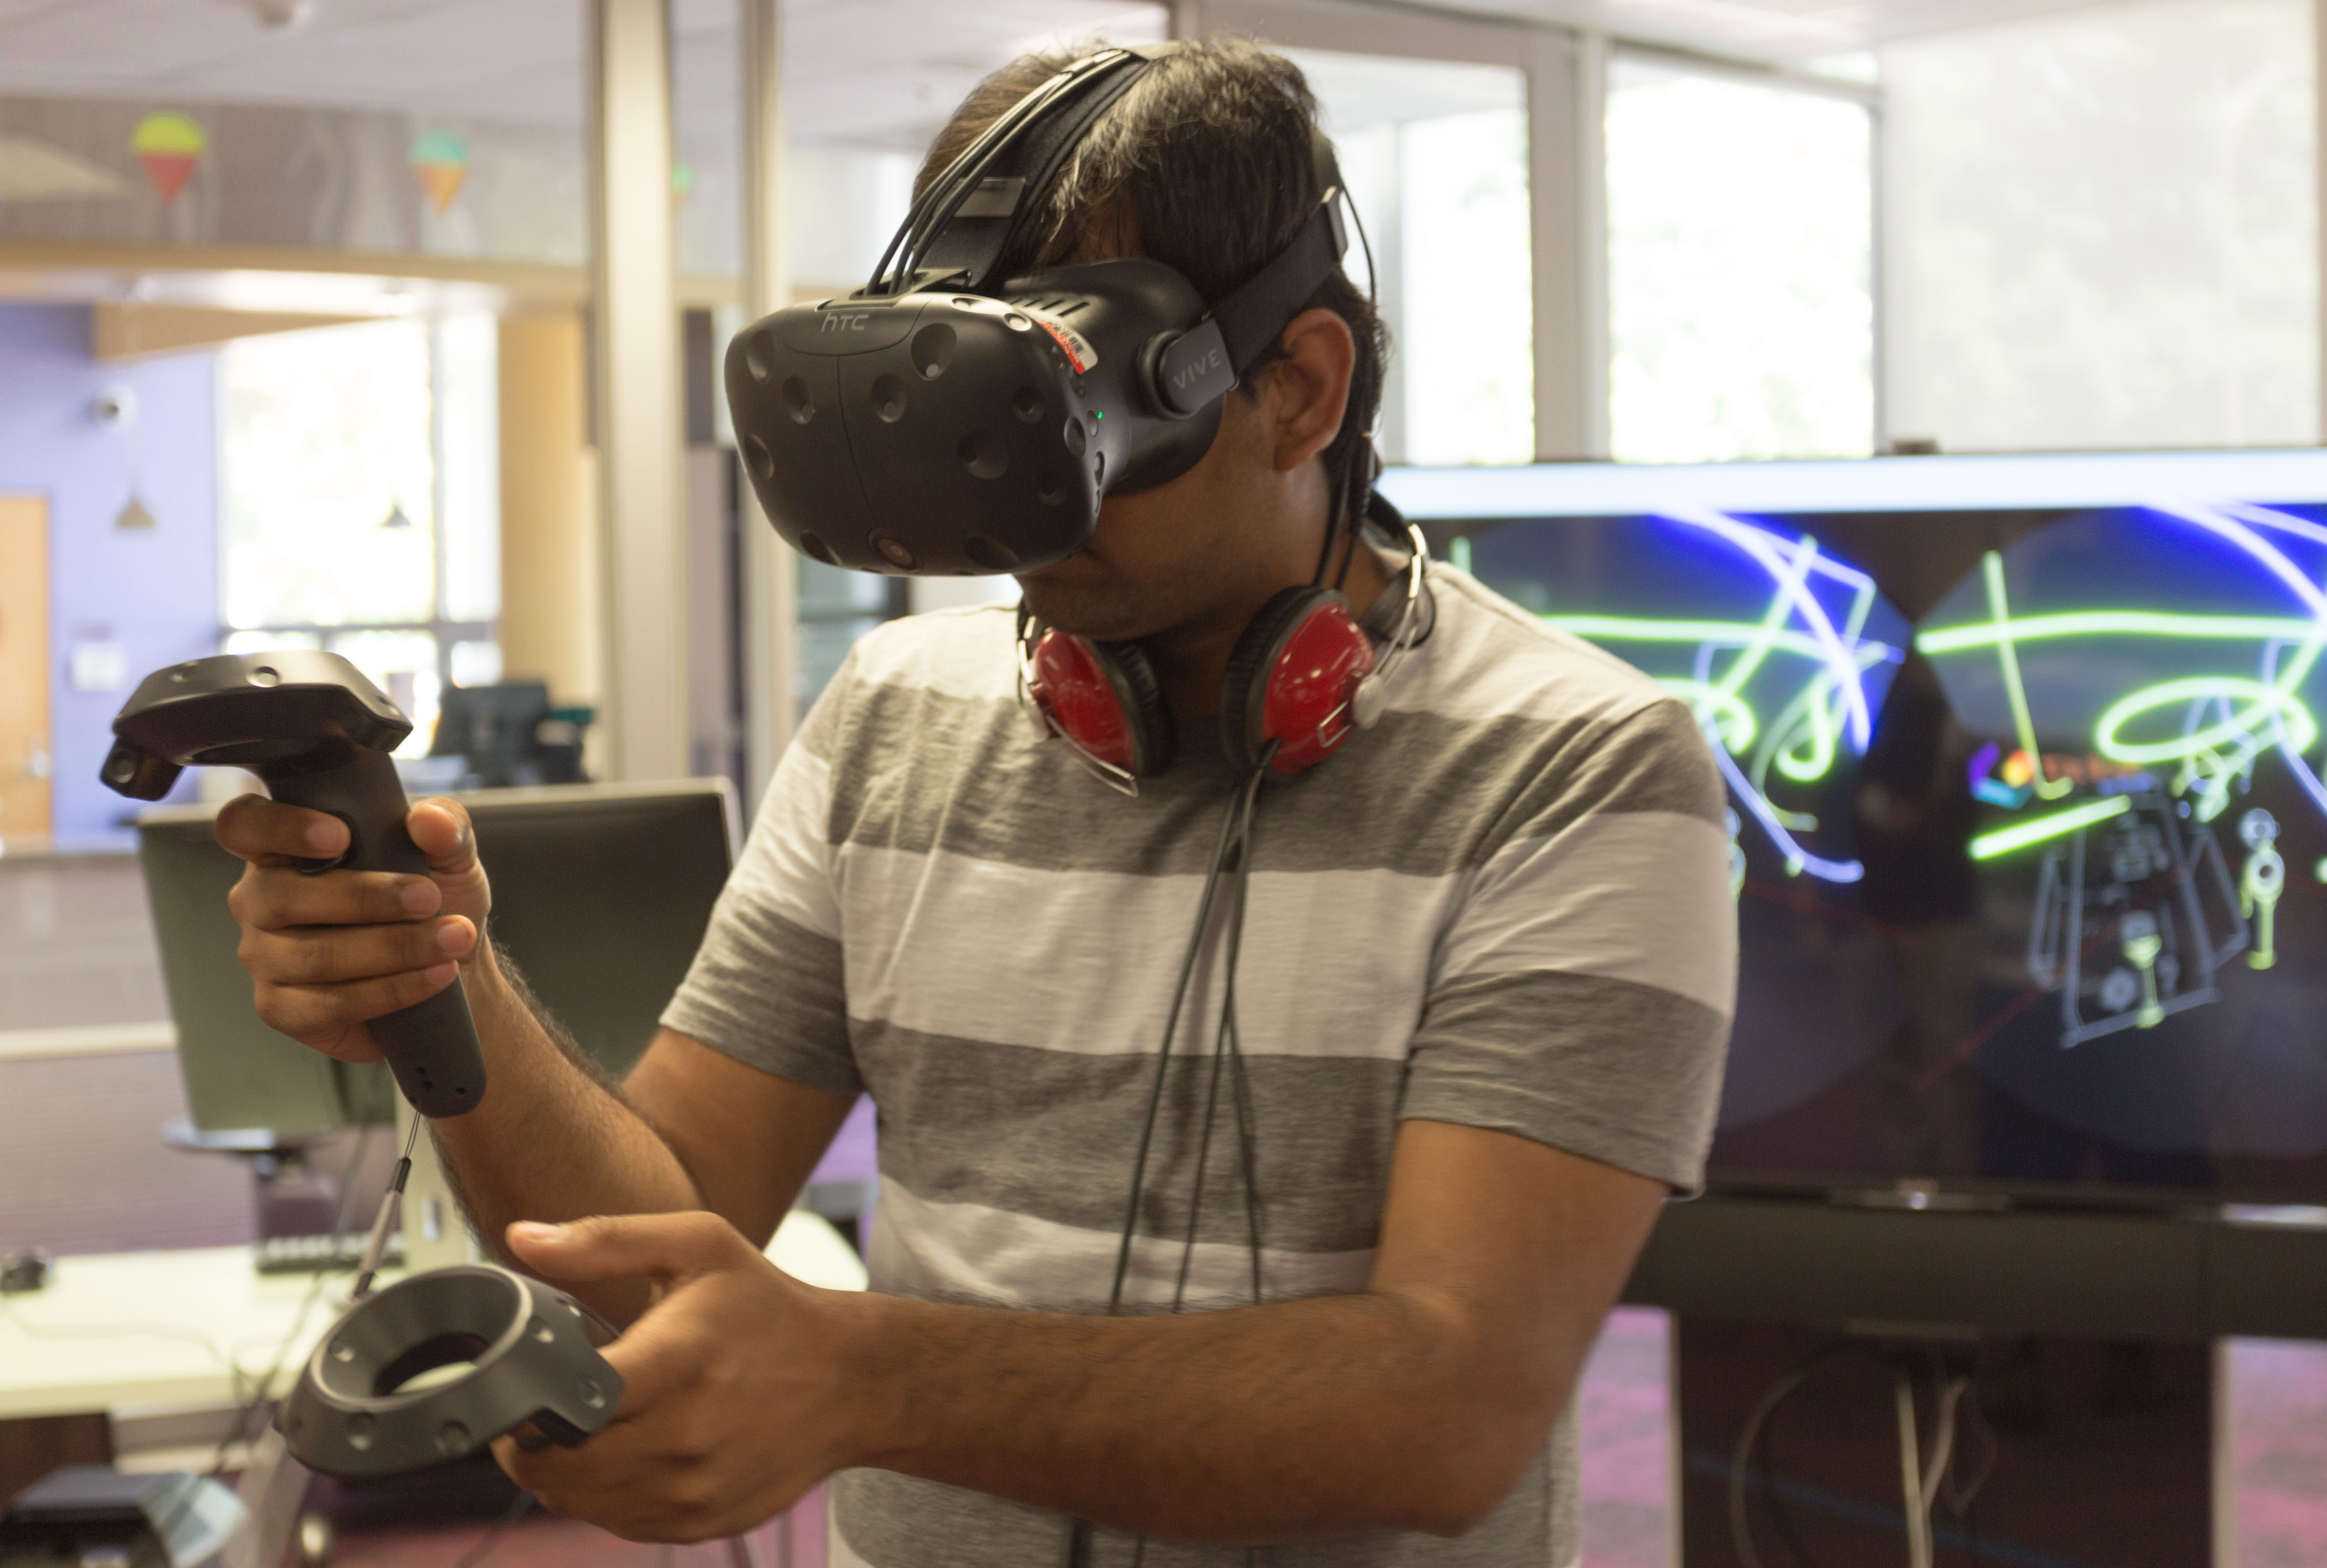 A student wearing a virtual reality headset with a screen display behind them